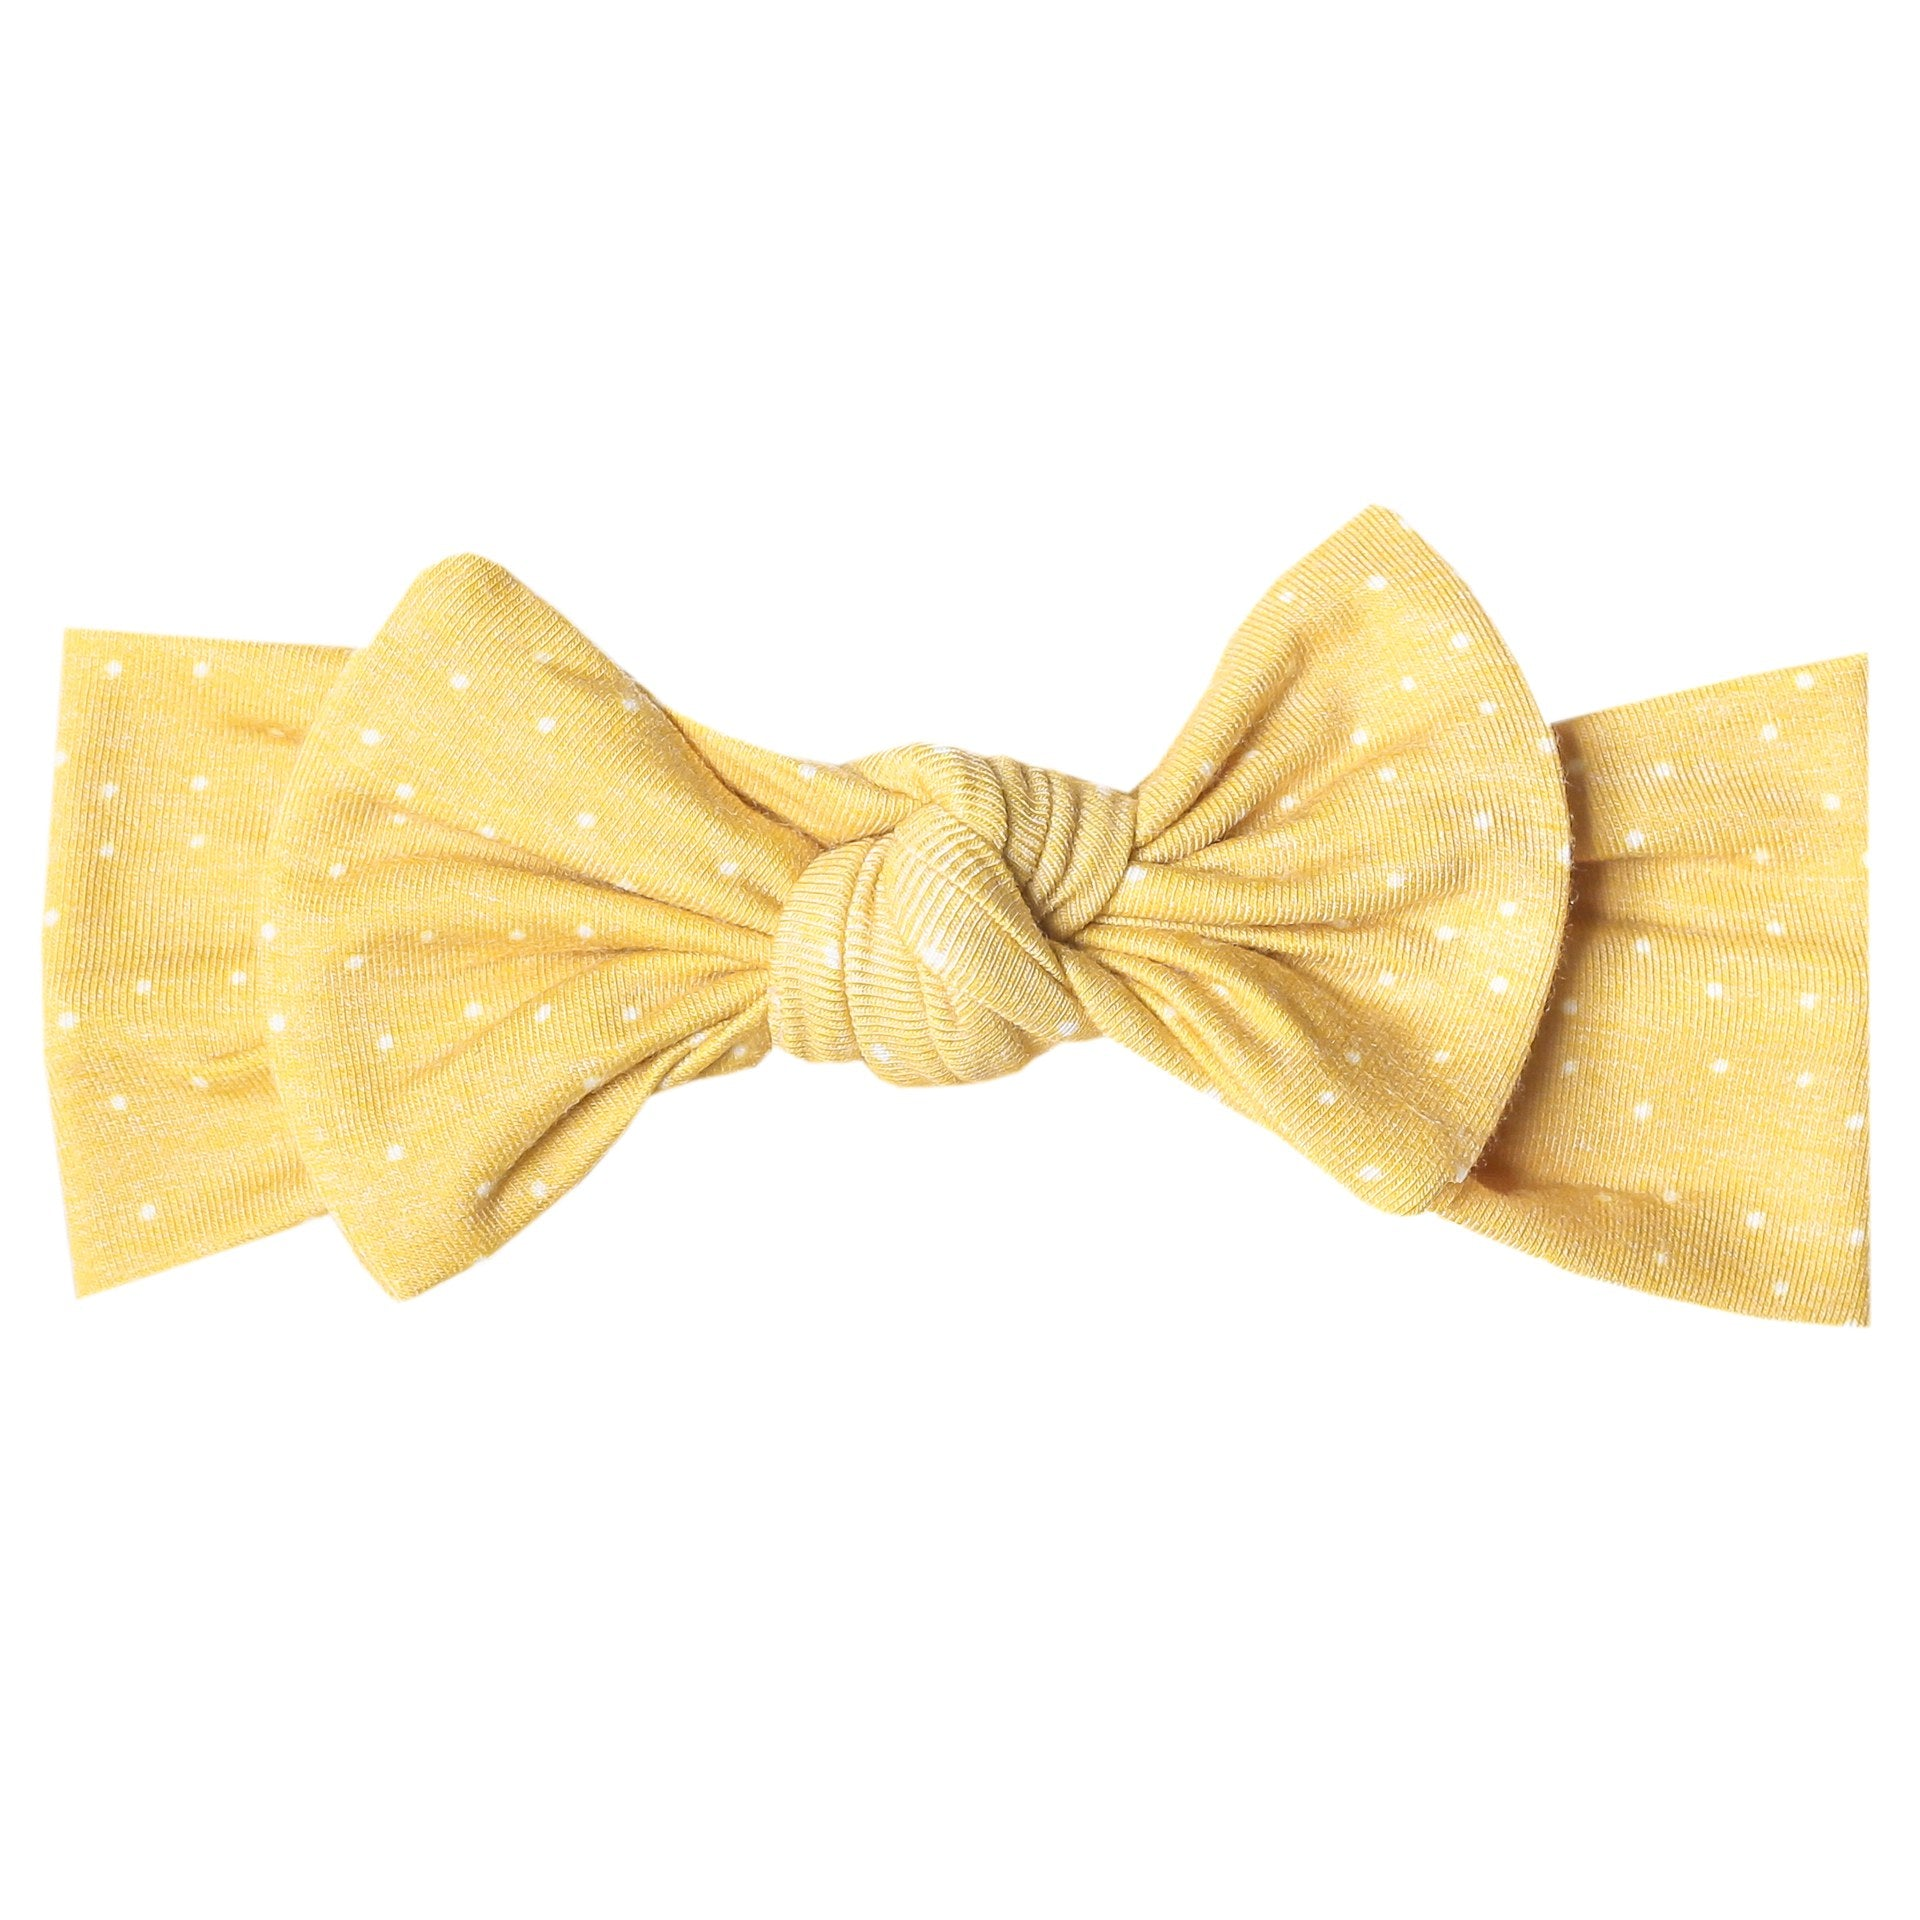 Marigold Knit Headband Bow